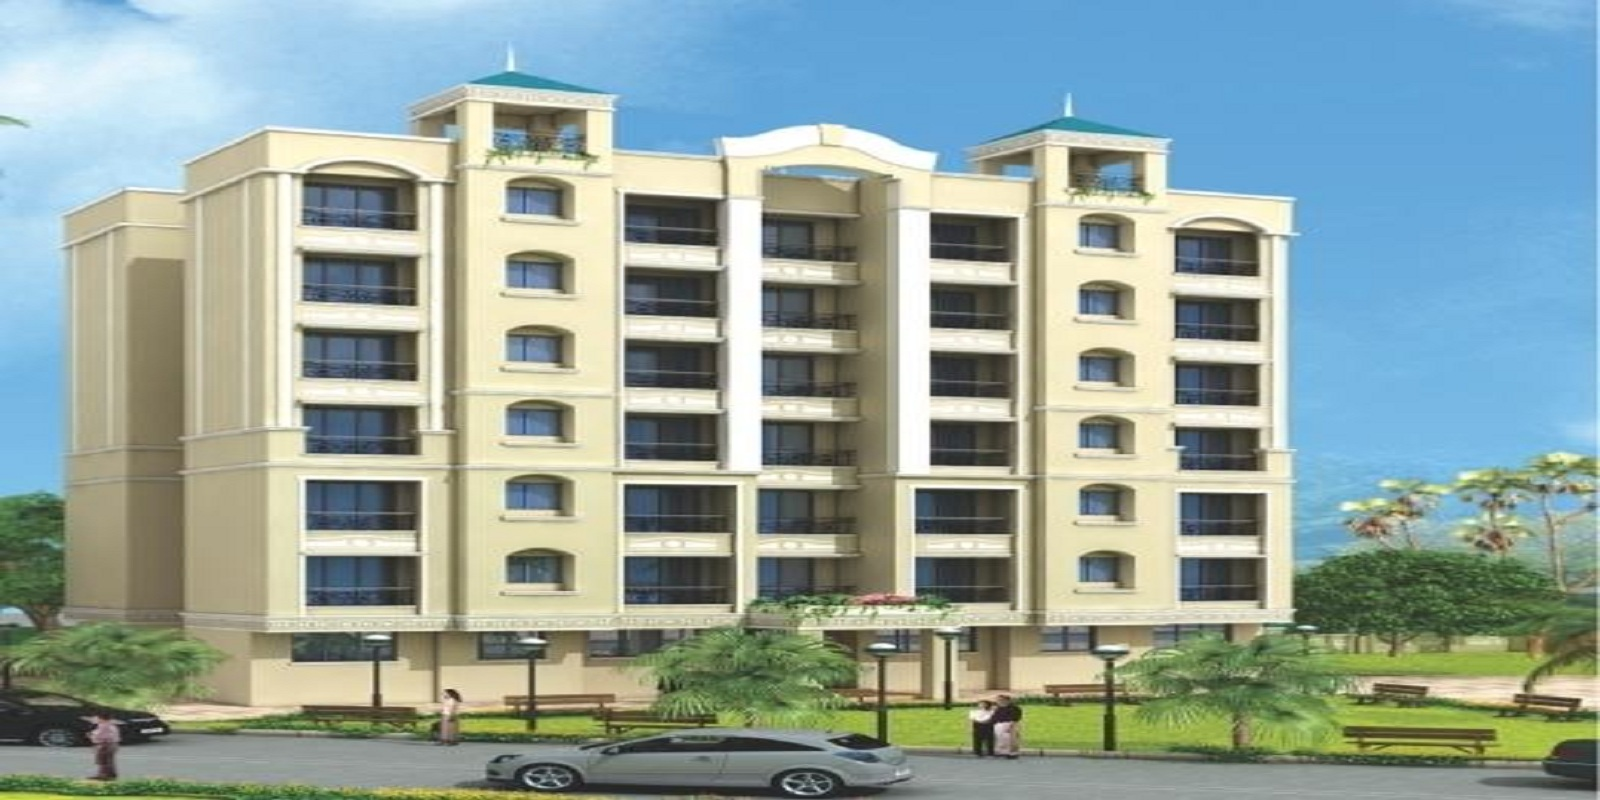 panvelkar realtors bhoomi project project large image1